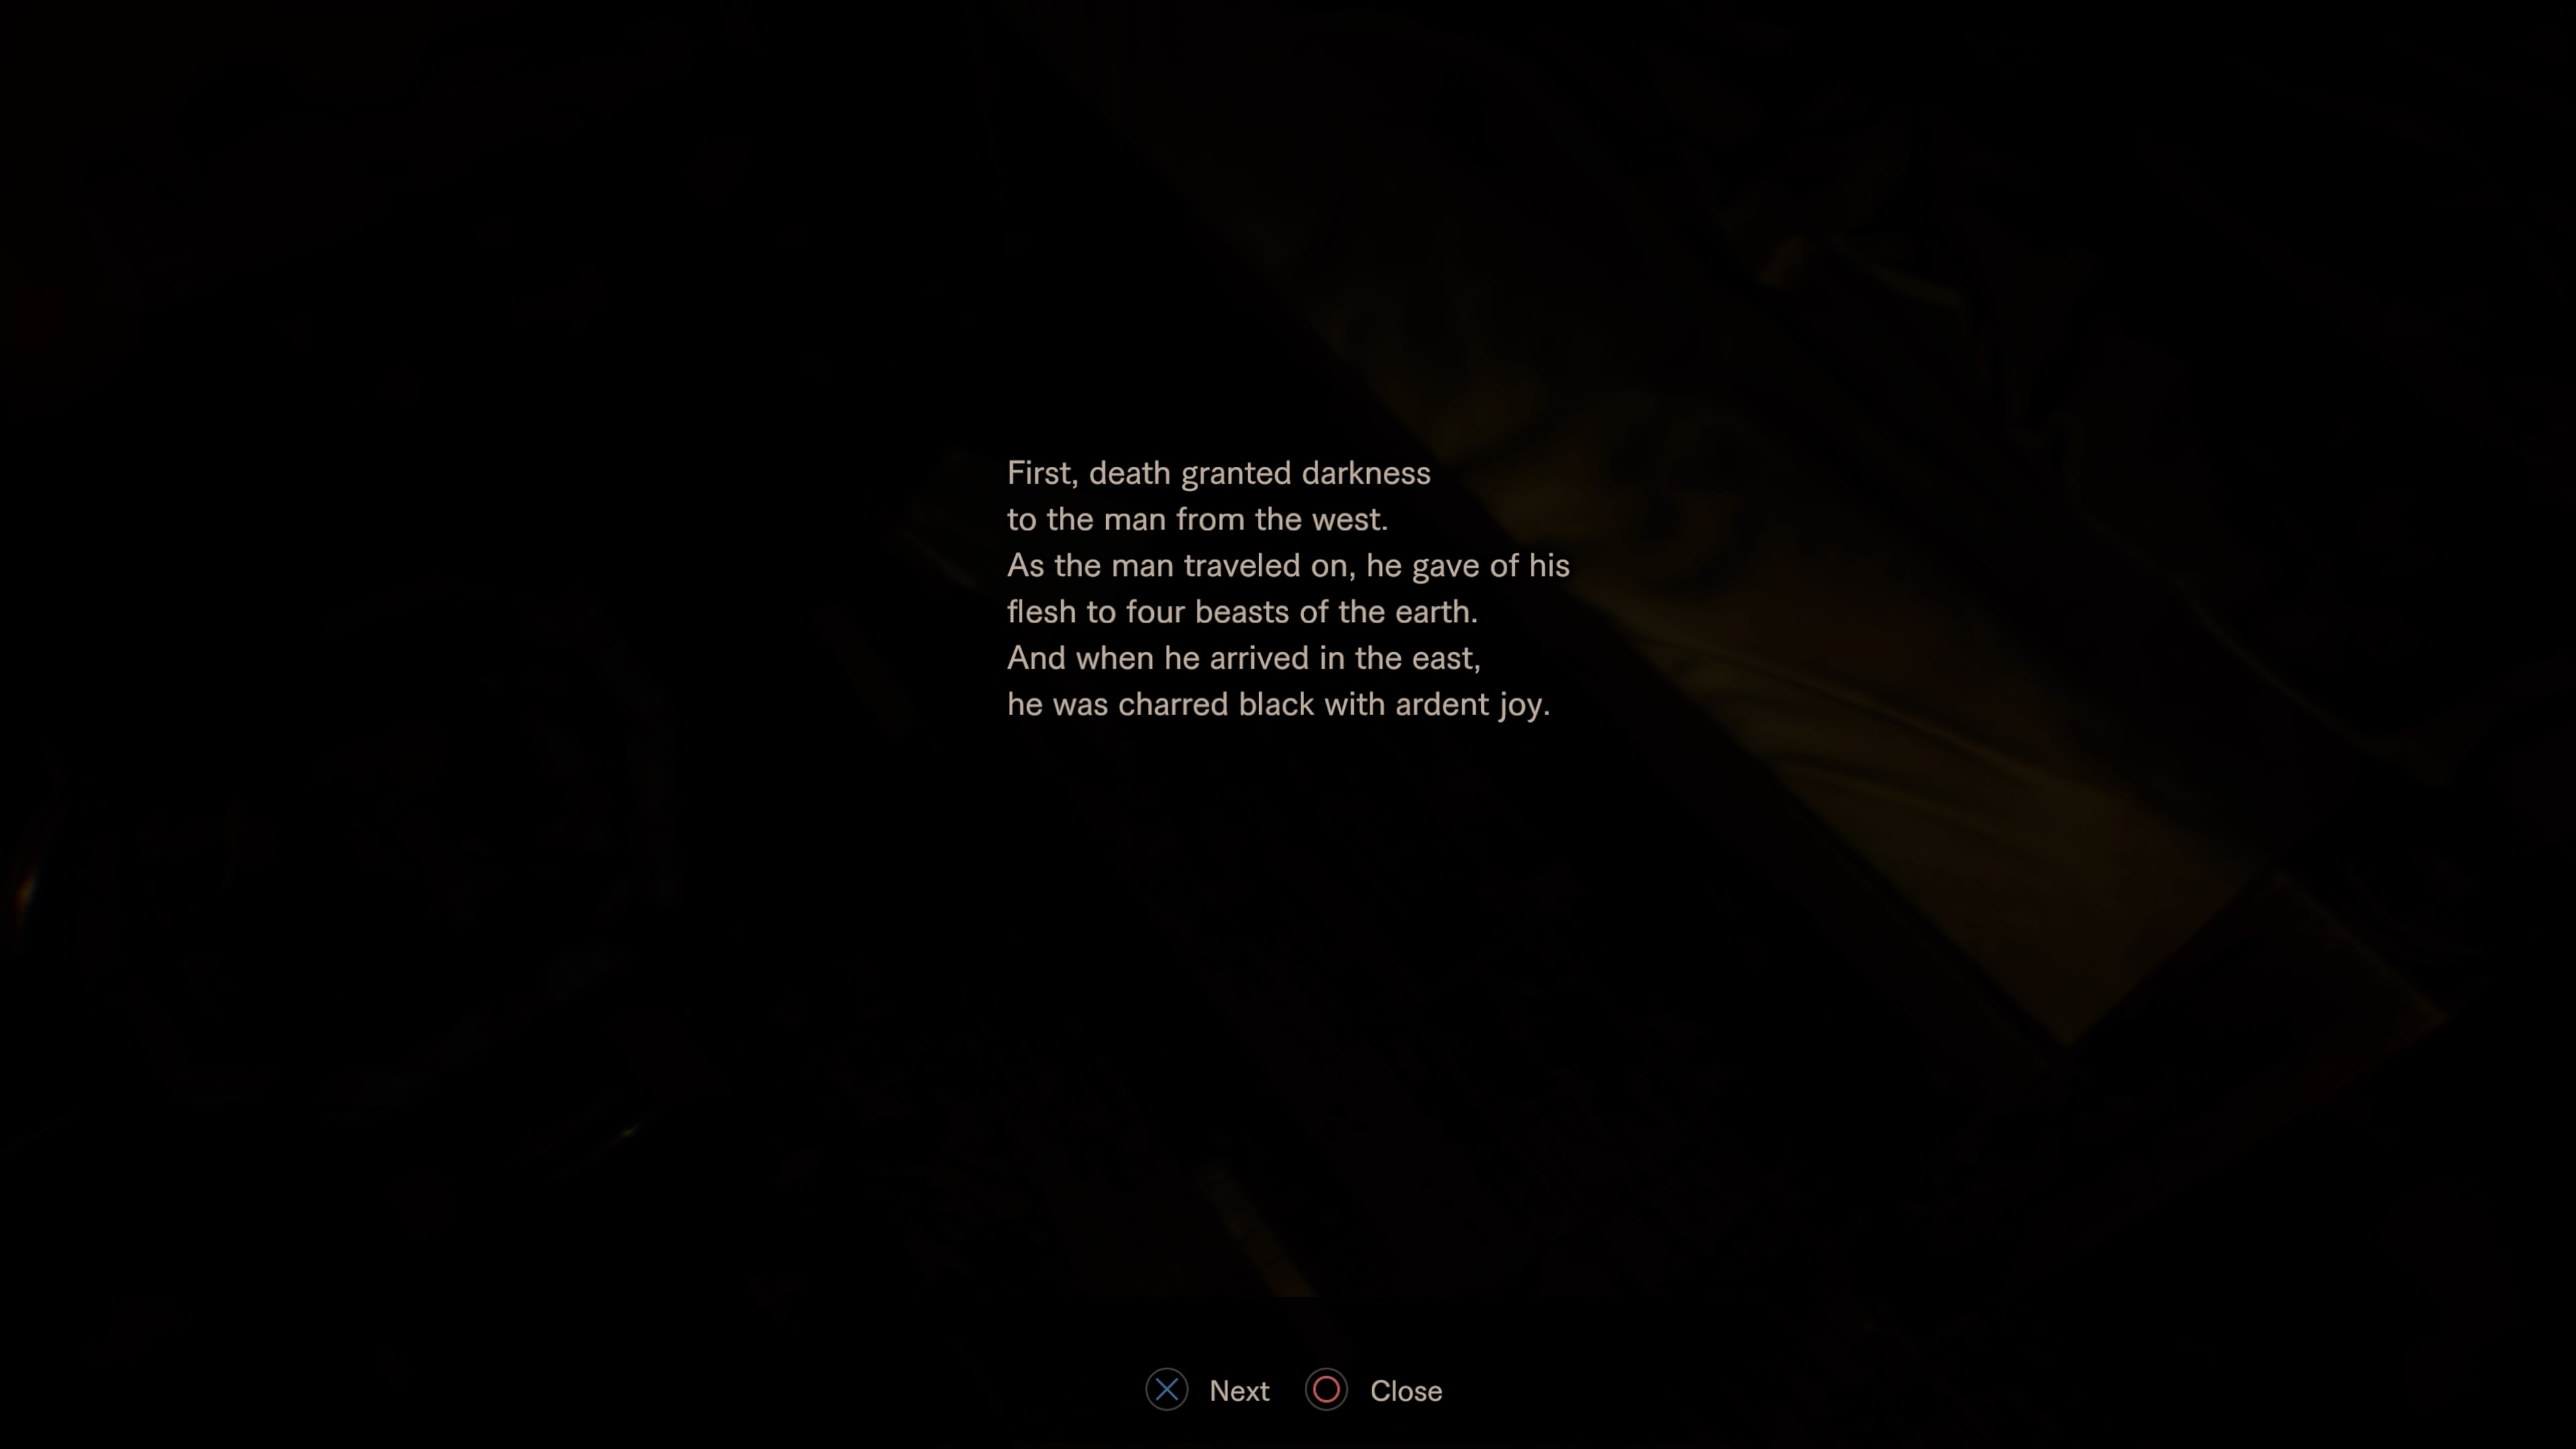 Resident Evil 7 Bedroom Dlc Guide Step By Step Walkthrough Puzzle Solutions Just Push Start